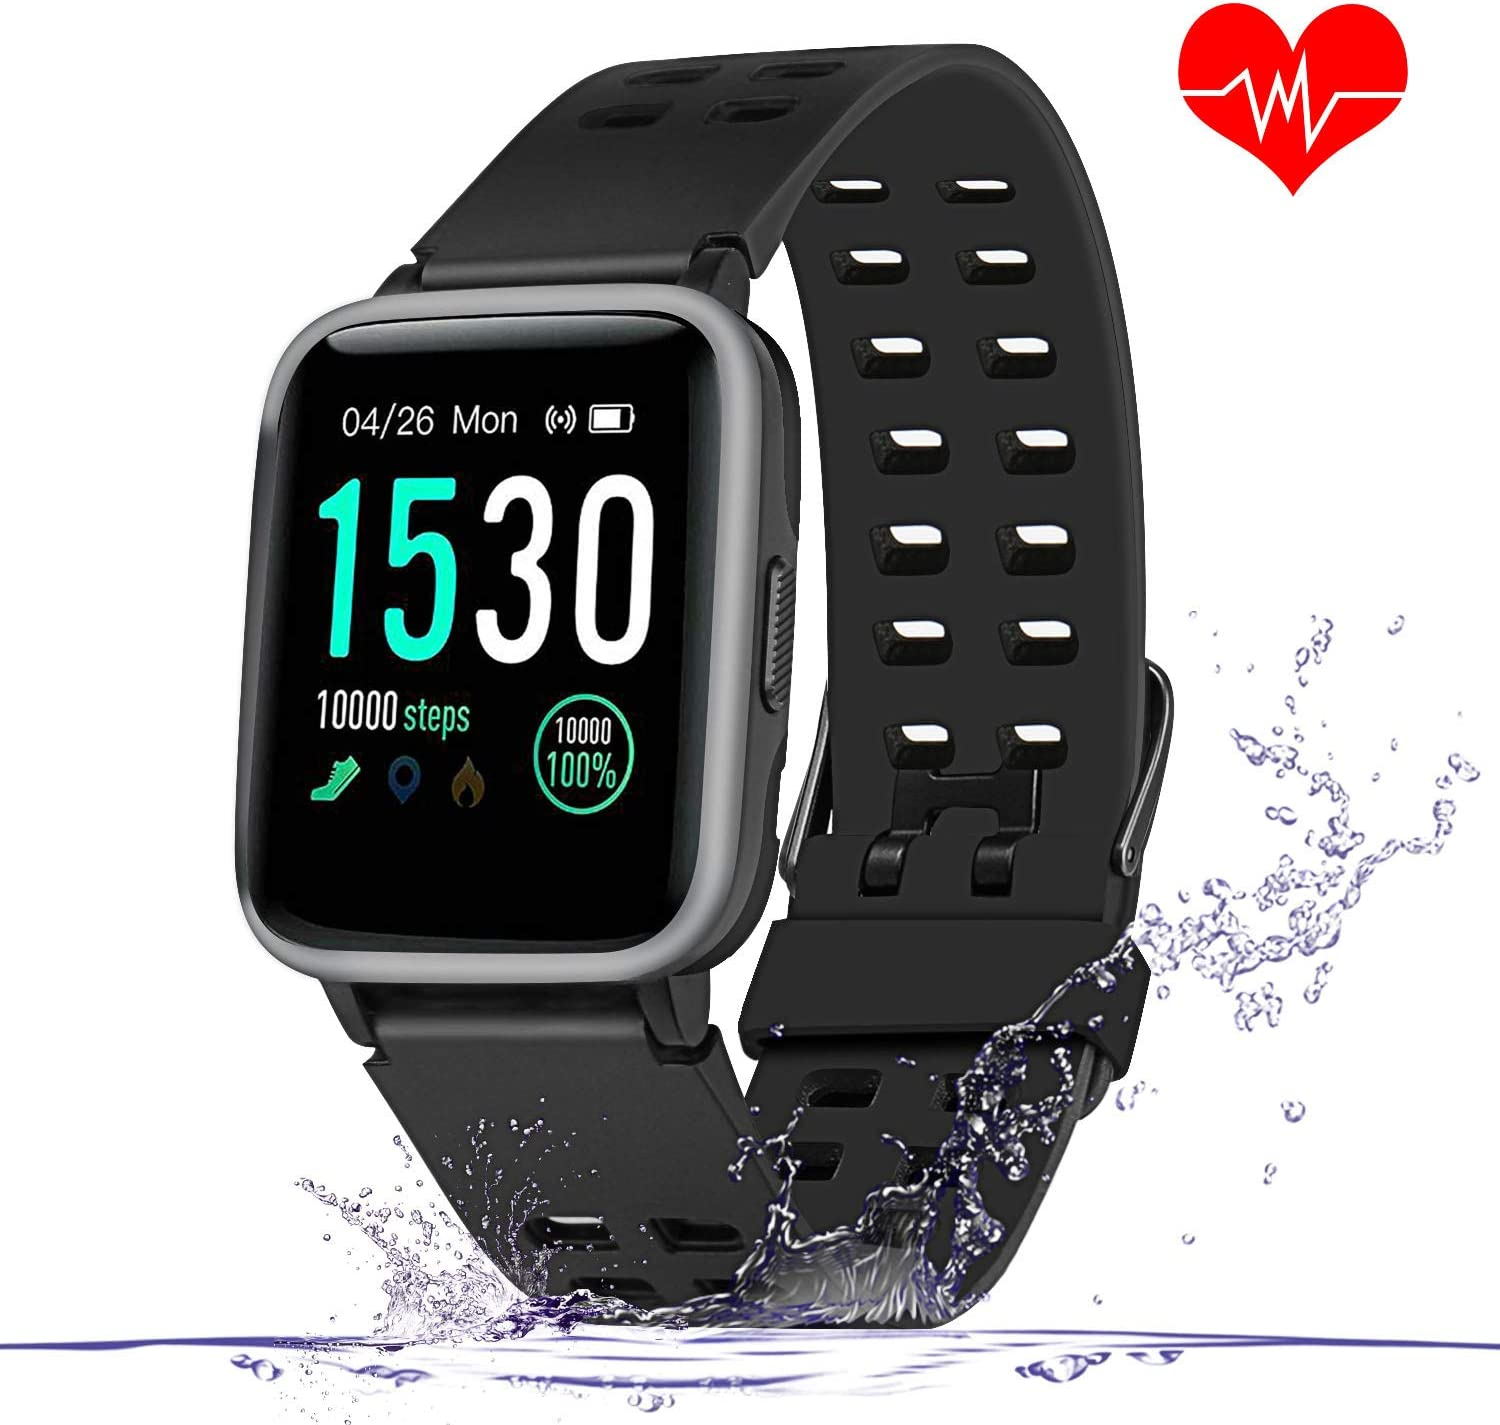 Enow Smart Watch, IP68 Waterproof Touch Screen Bluetooth Fitness Tracker with All Day Heart Rate Monitor, Sleep Tracker, 14 Sports Mode, Pedometer Step Calories Counter for Women Men, Android iOS